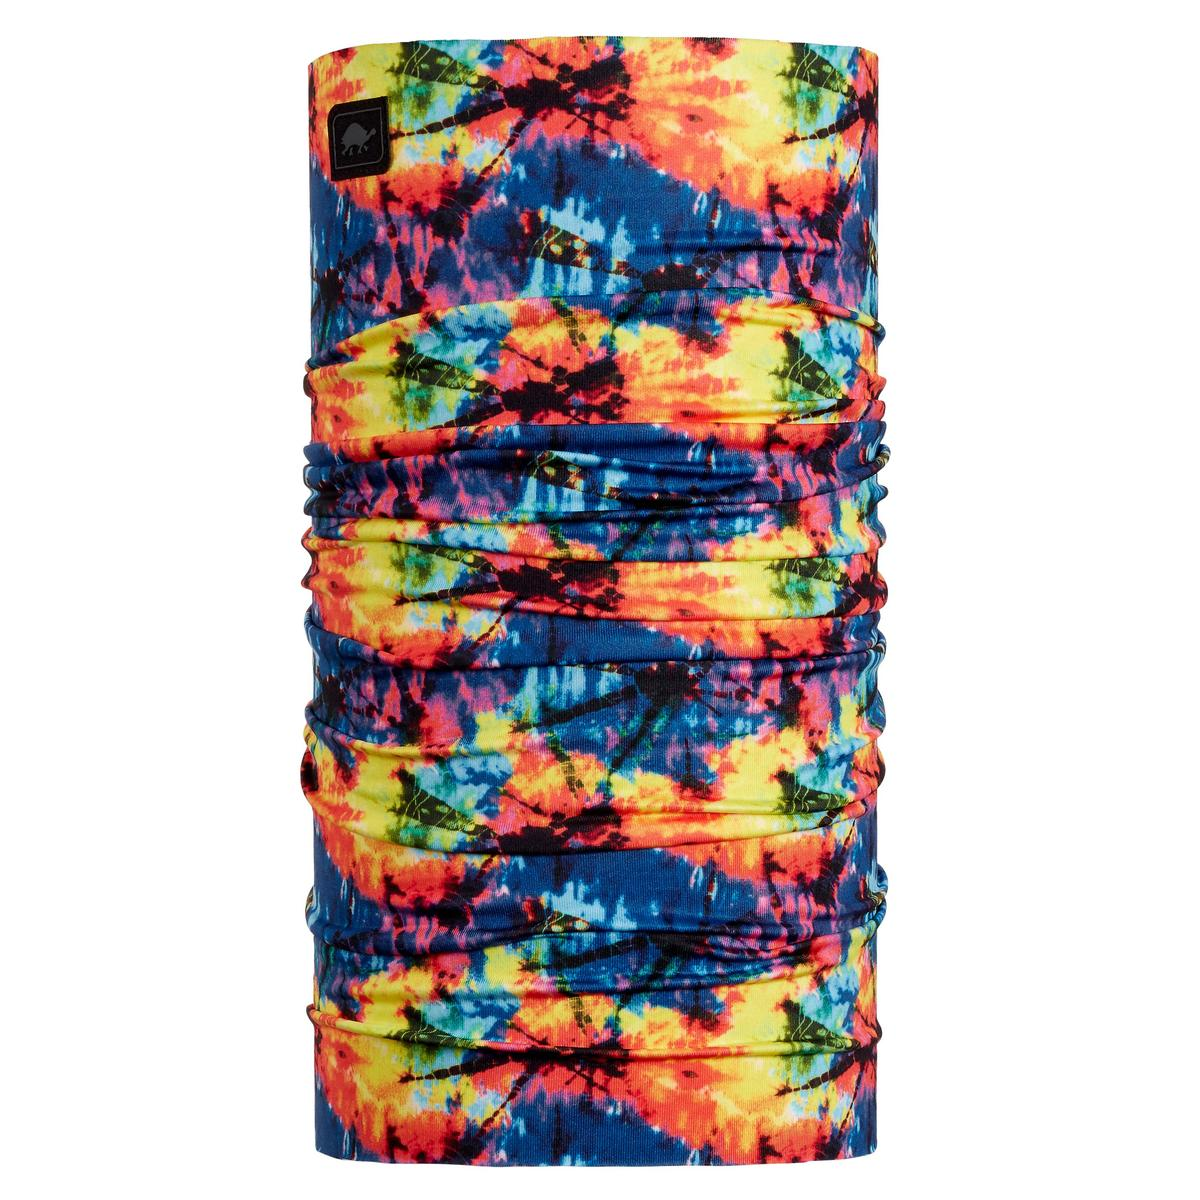 Turtle Fur Youth Comfort Shell Totally Tubular Lightweight Neck Gaiter Classic Tie Dye